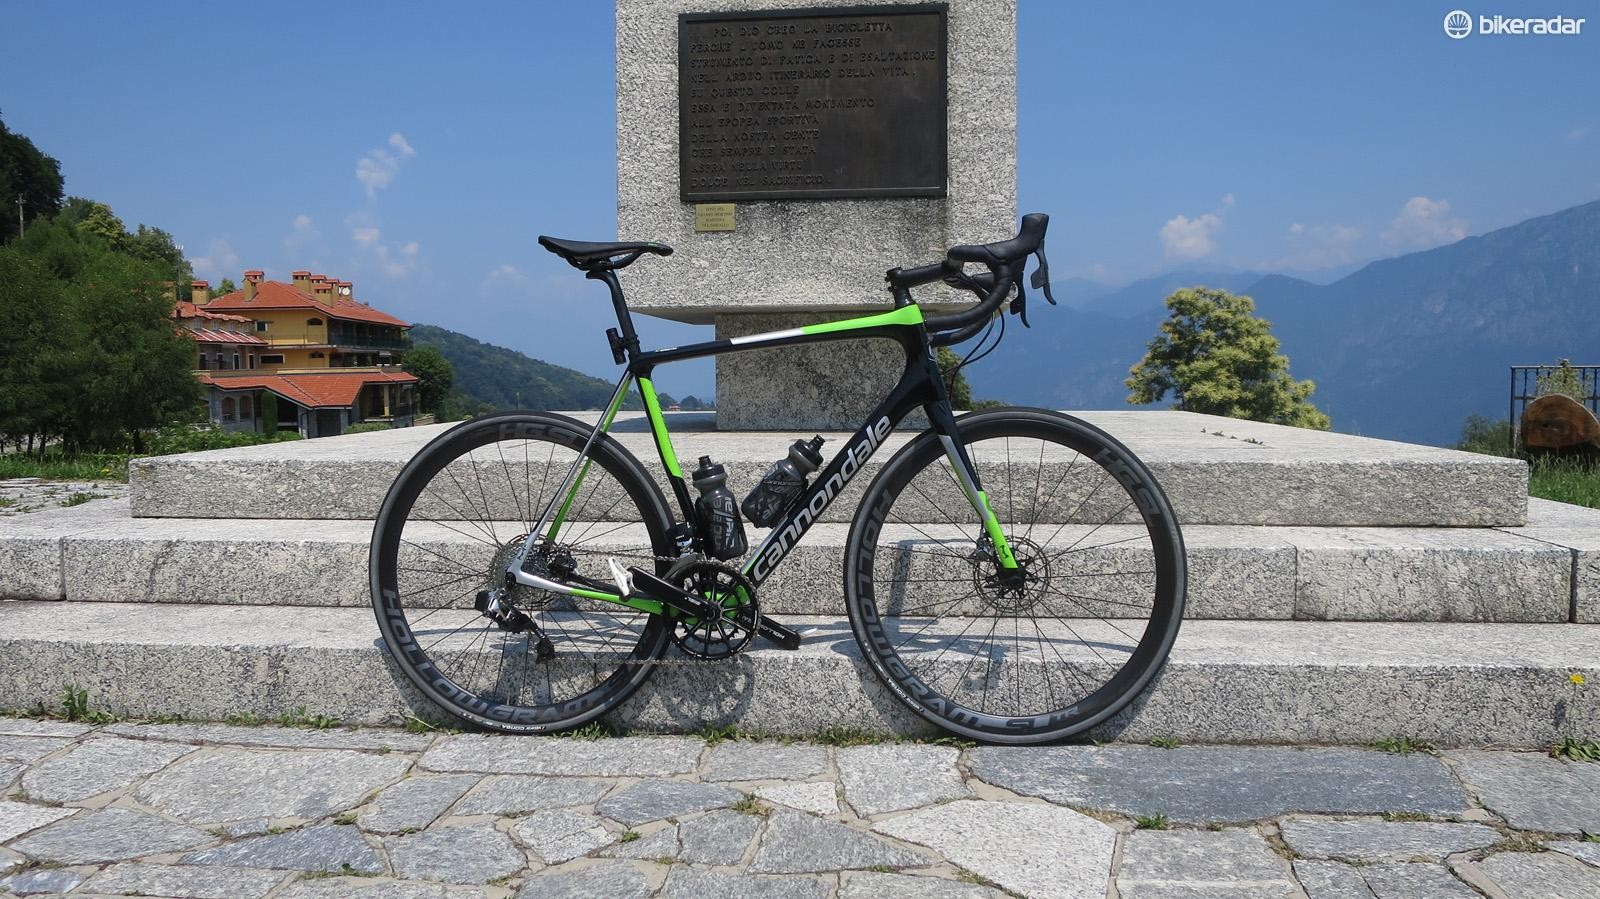 The top of the Ghisallo and the Synapse has proved itself a capable companion on the climbs